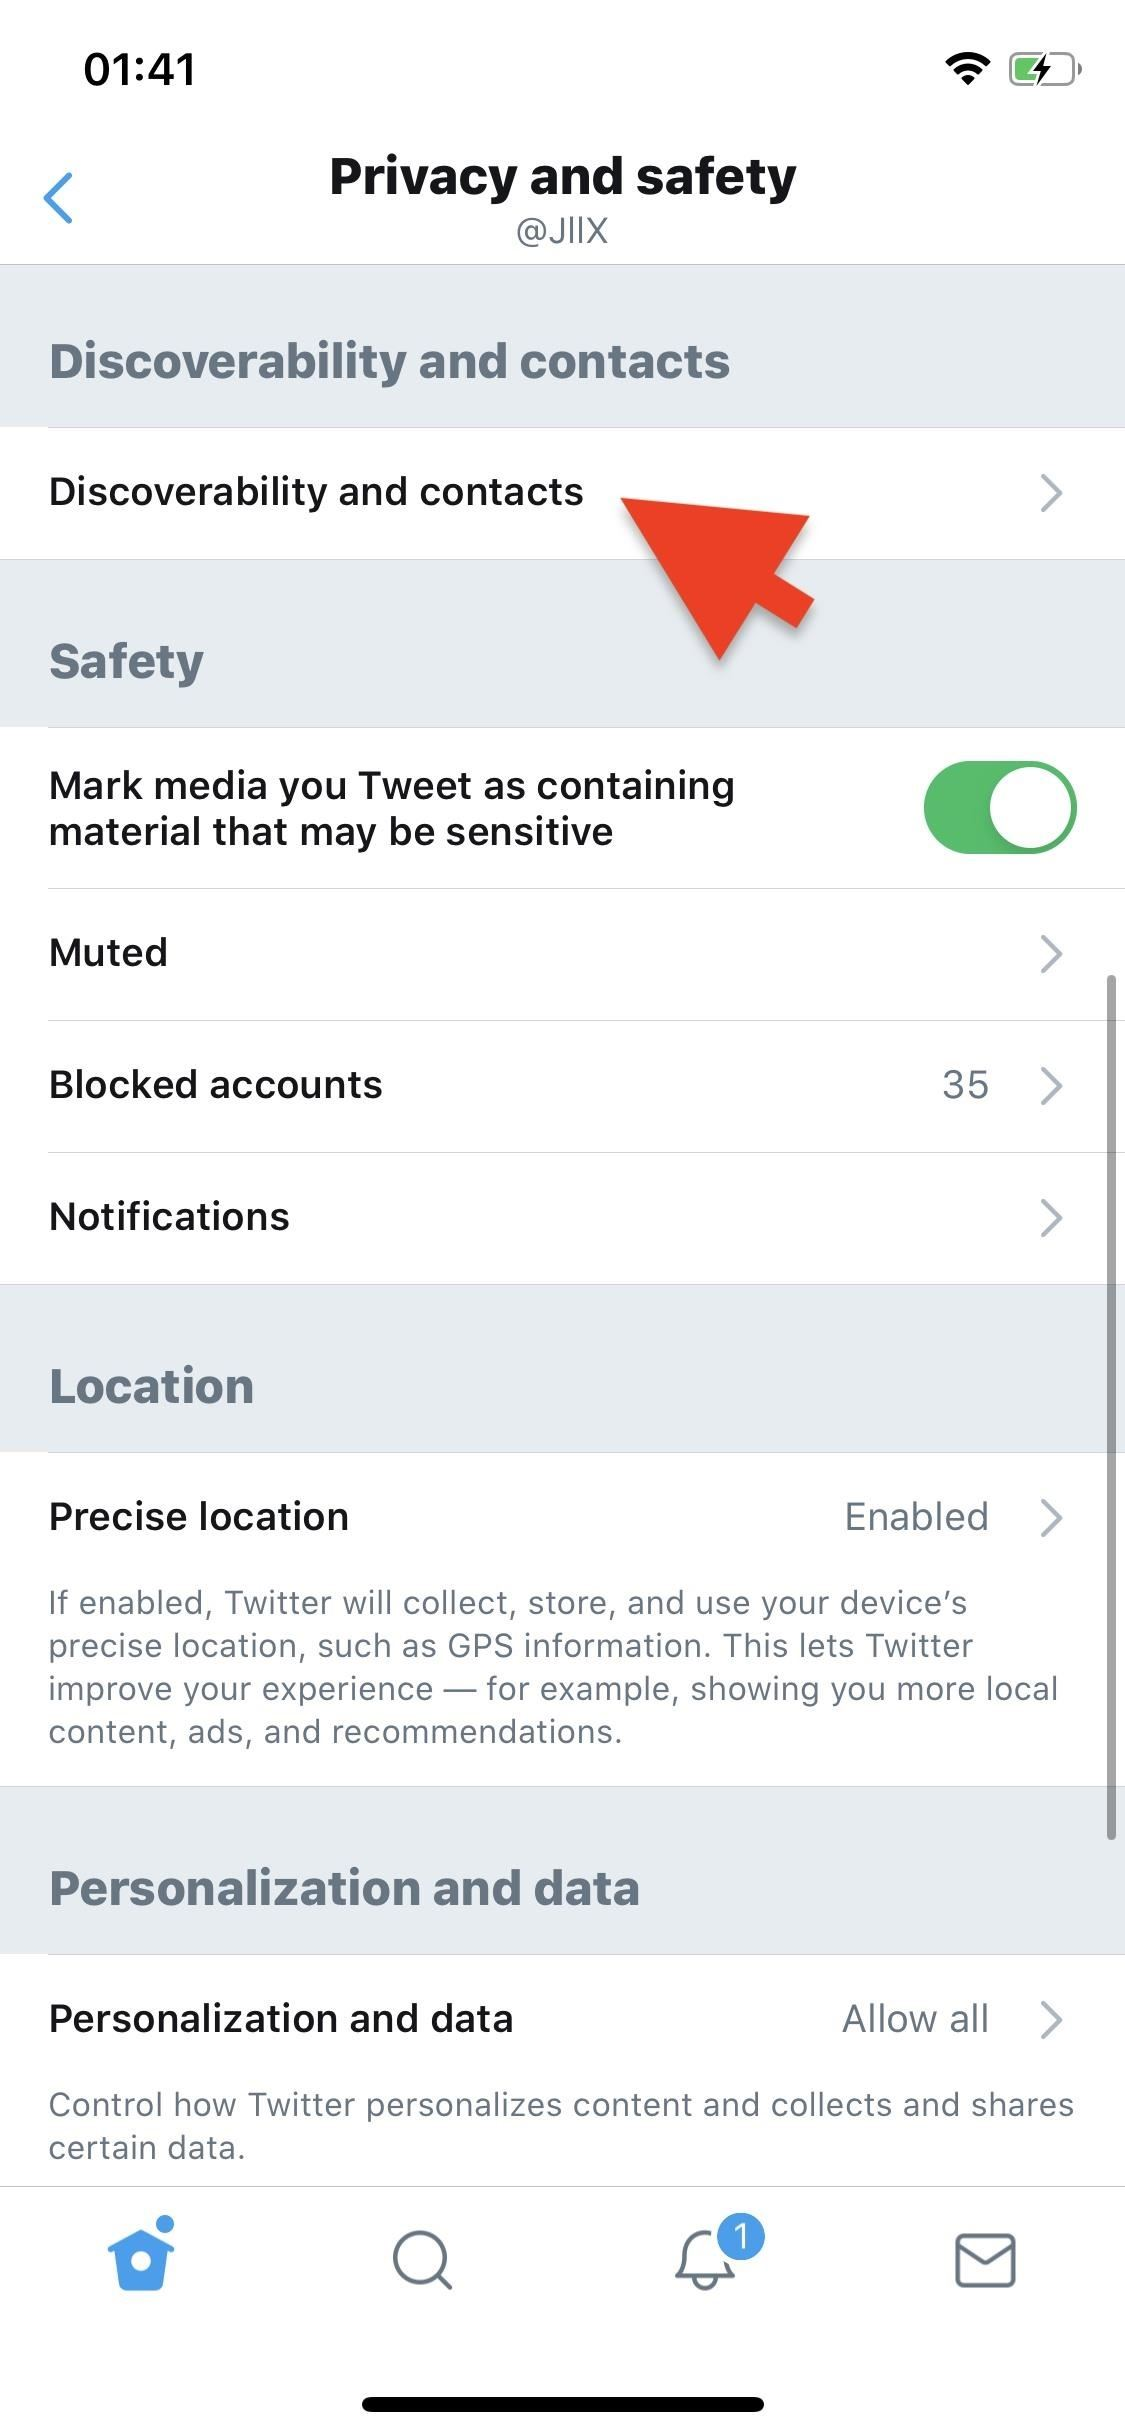 7 Tips to Improve Your Privacy & Safety on Twitter